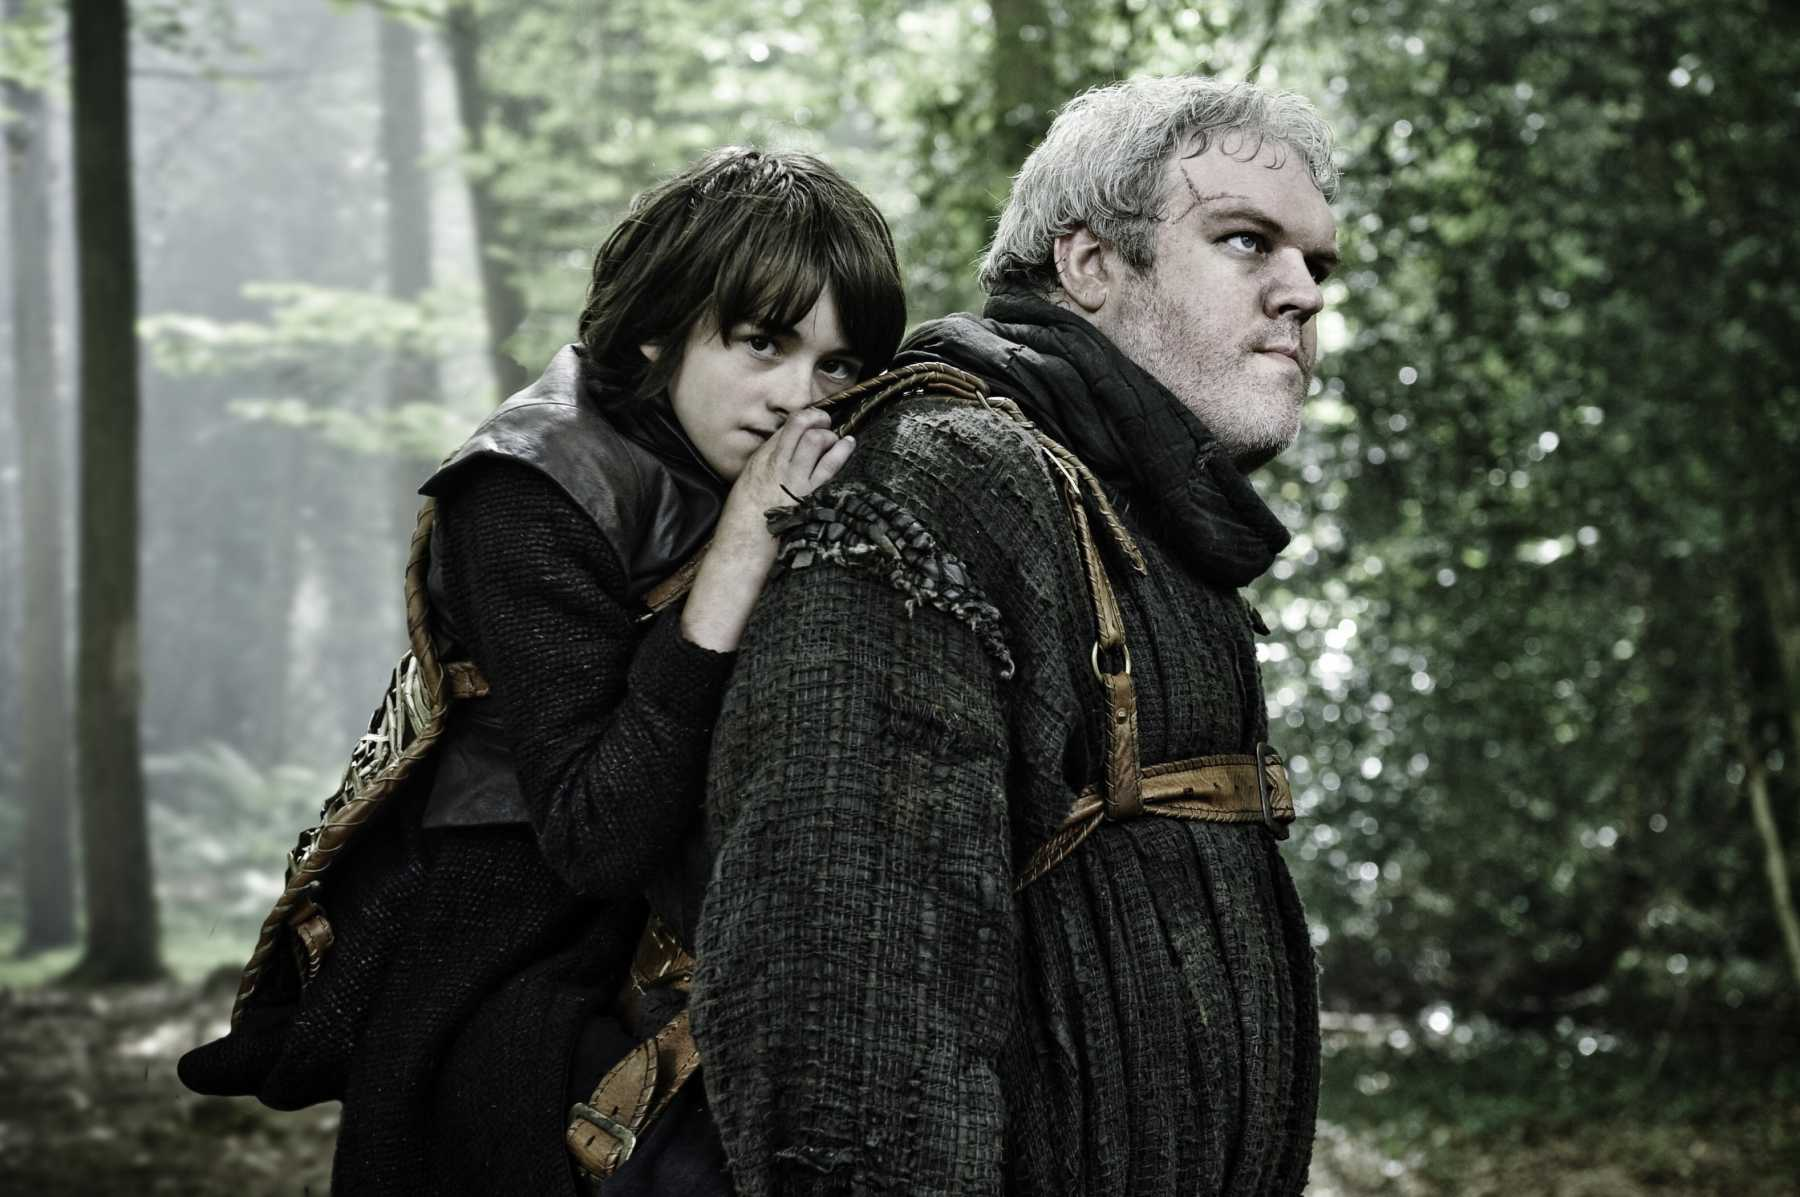 Game Of Thrones Star Kristian Nairn Comes Out; Says It's Just A Small Part Of Who He Is